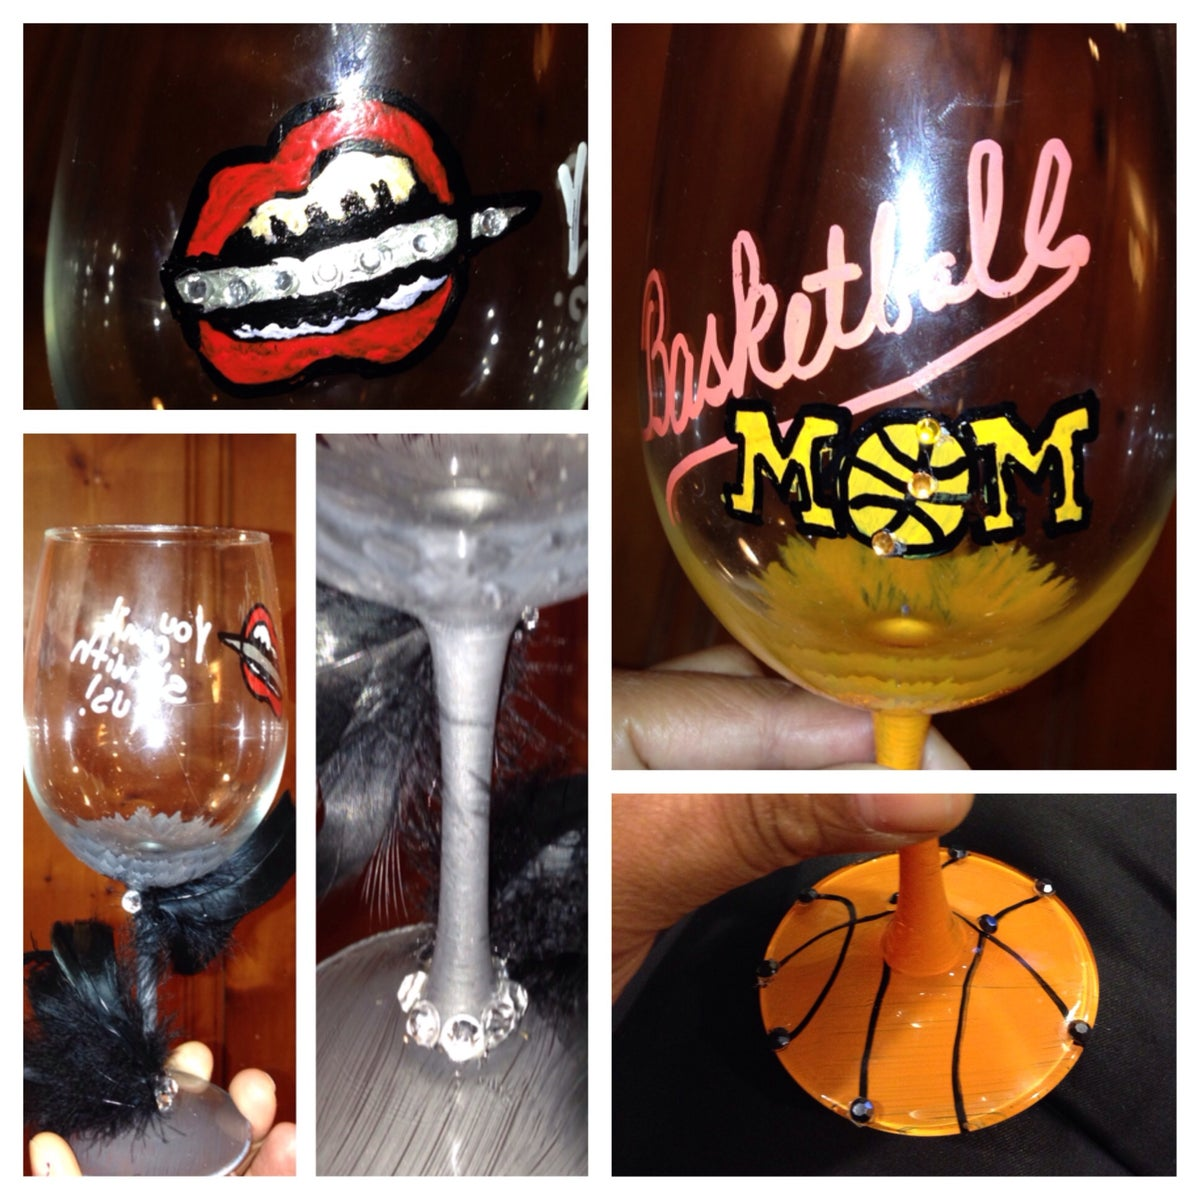 Crystals c me hand painted pieces Big w wine glasses